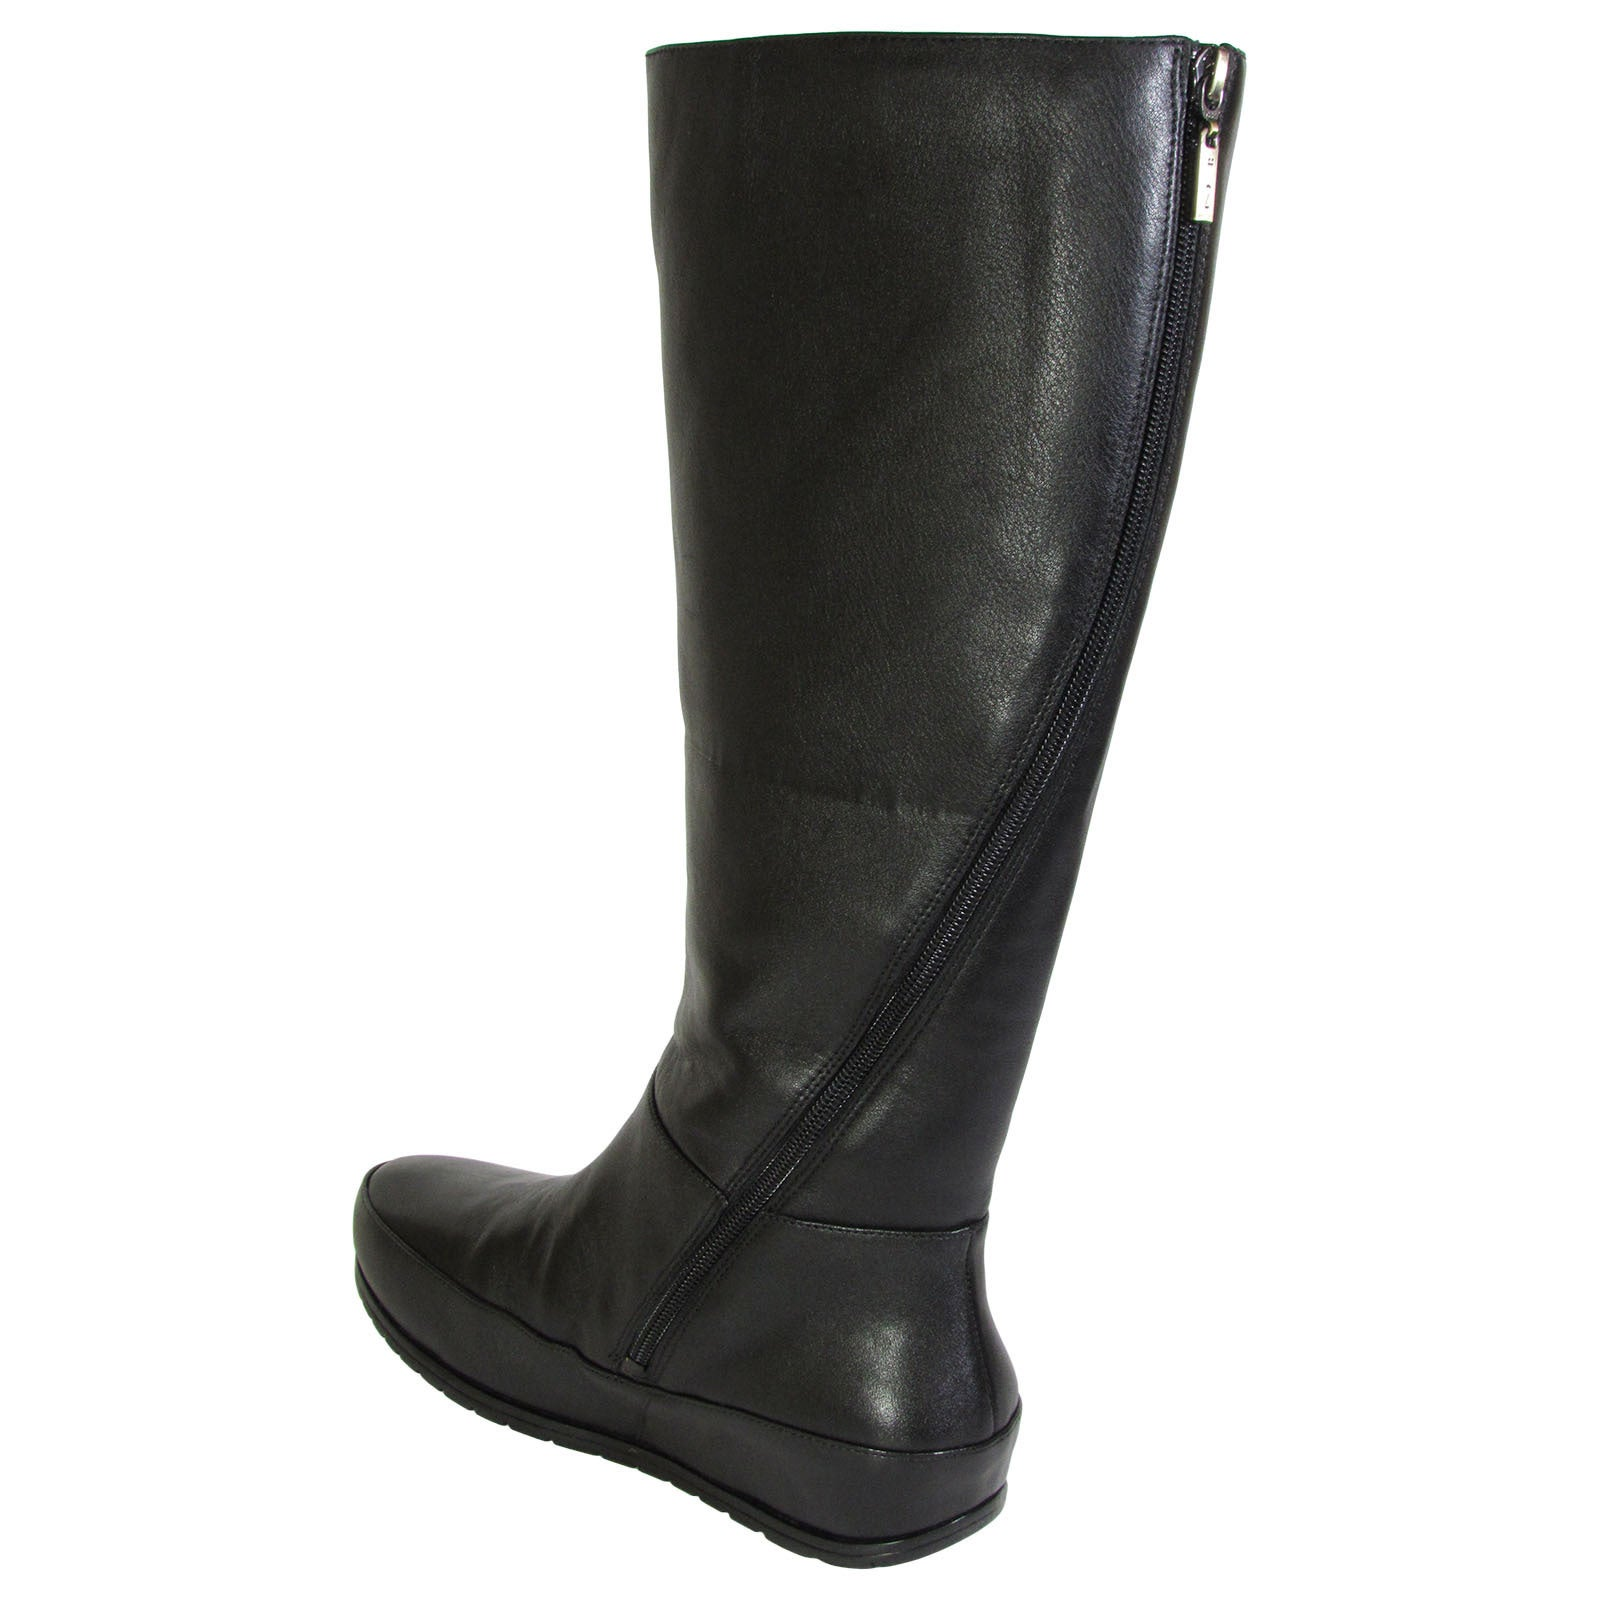 1c933a3b43d Shop Fitflop Womens DueBoot Twisted Zip Knee High Boots - Free ...